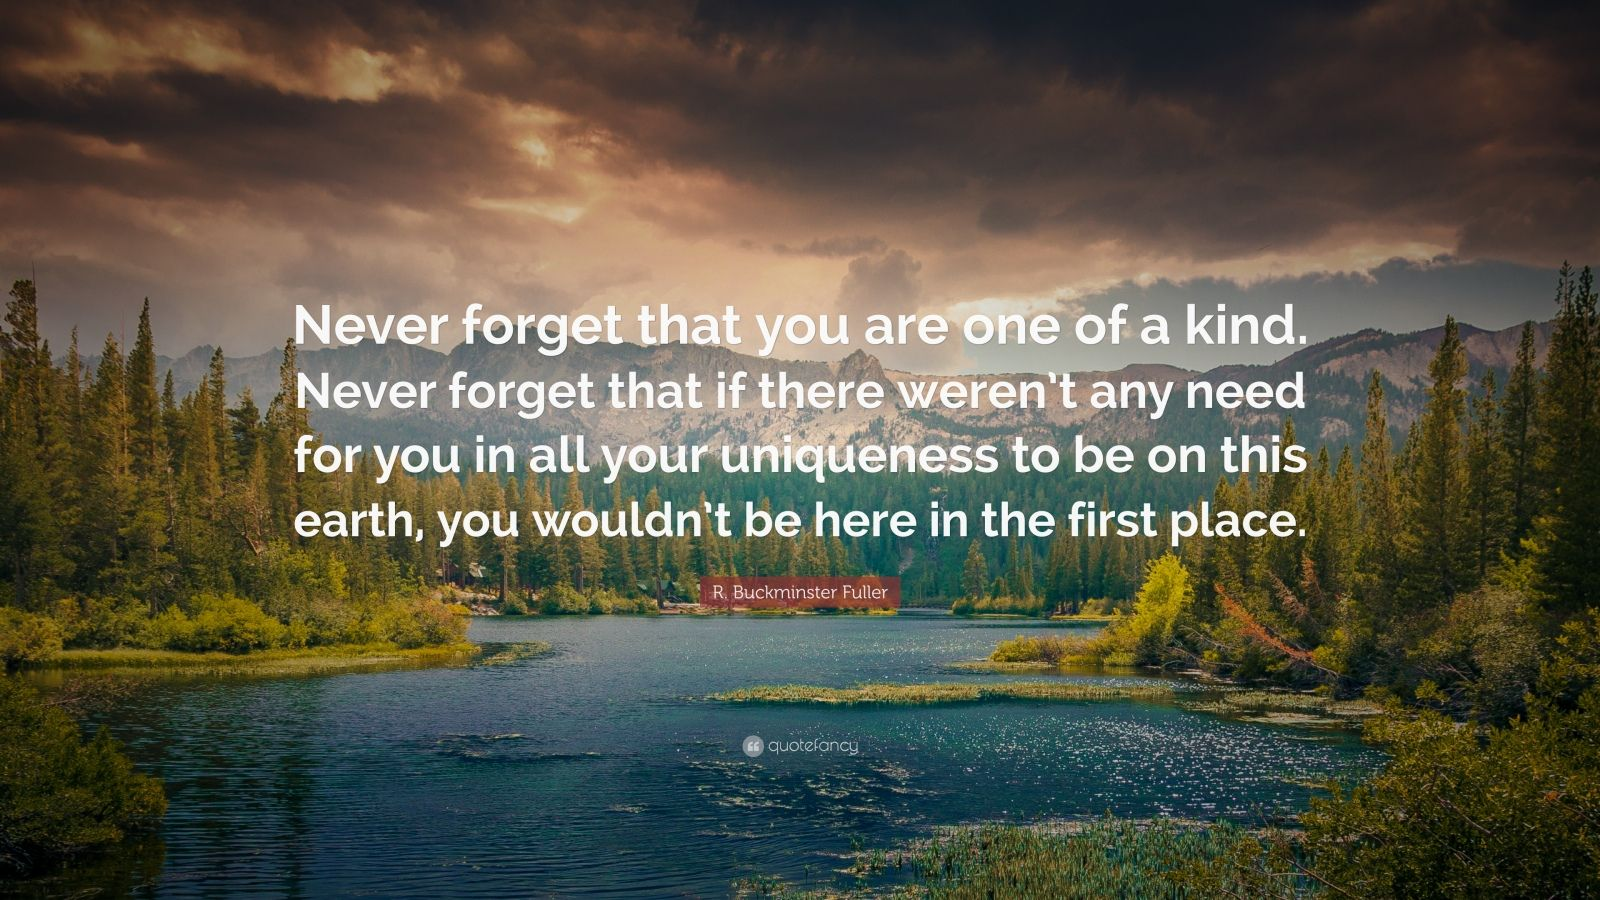 """R. Buckminster Fuller Quote: """"Never forget that you are one of a kind. Never forget that if there weren't any need for you in all your uniqueness to be on this earth, you wouldn't be here in the first place."""""""